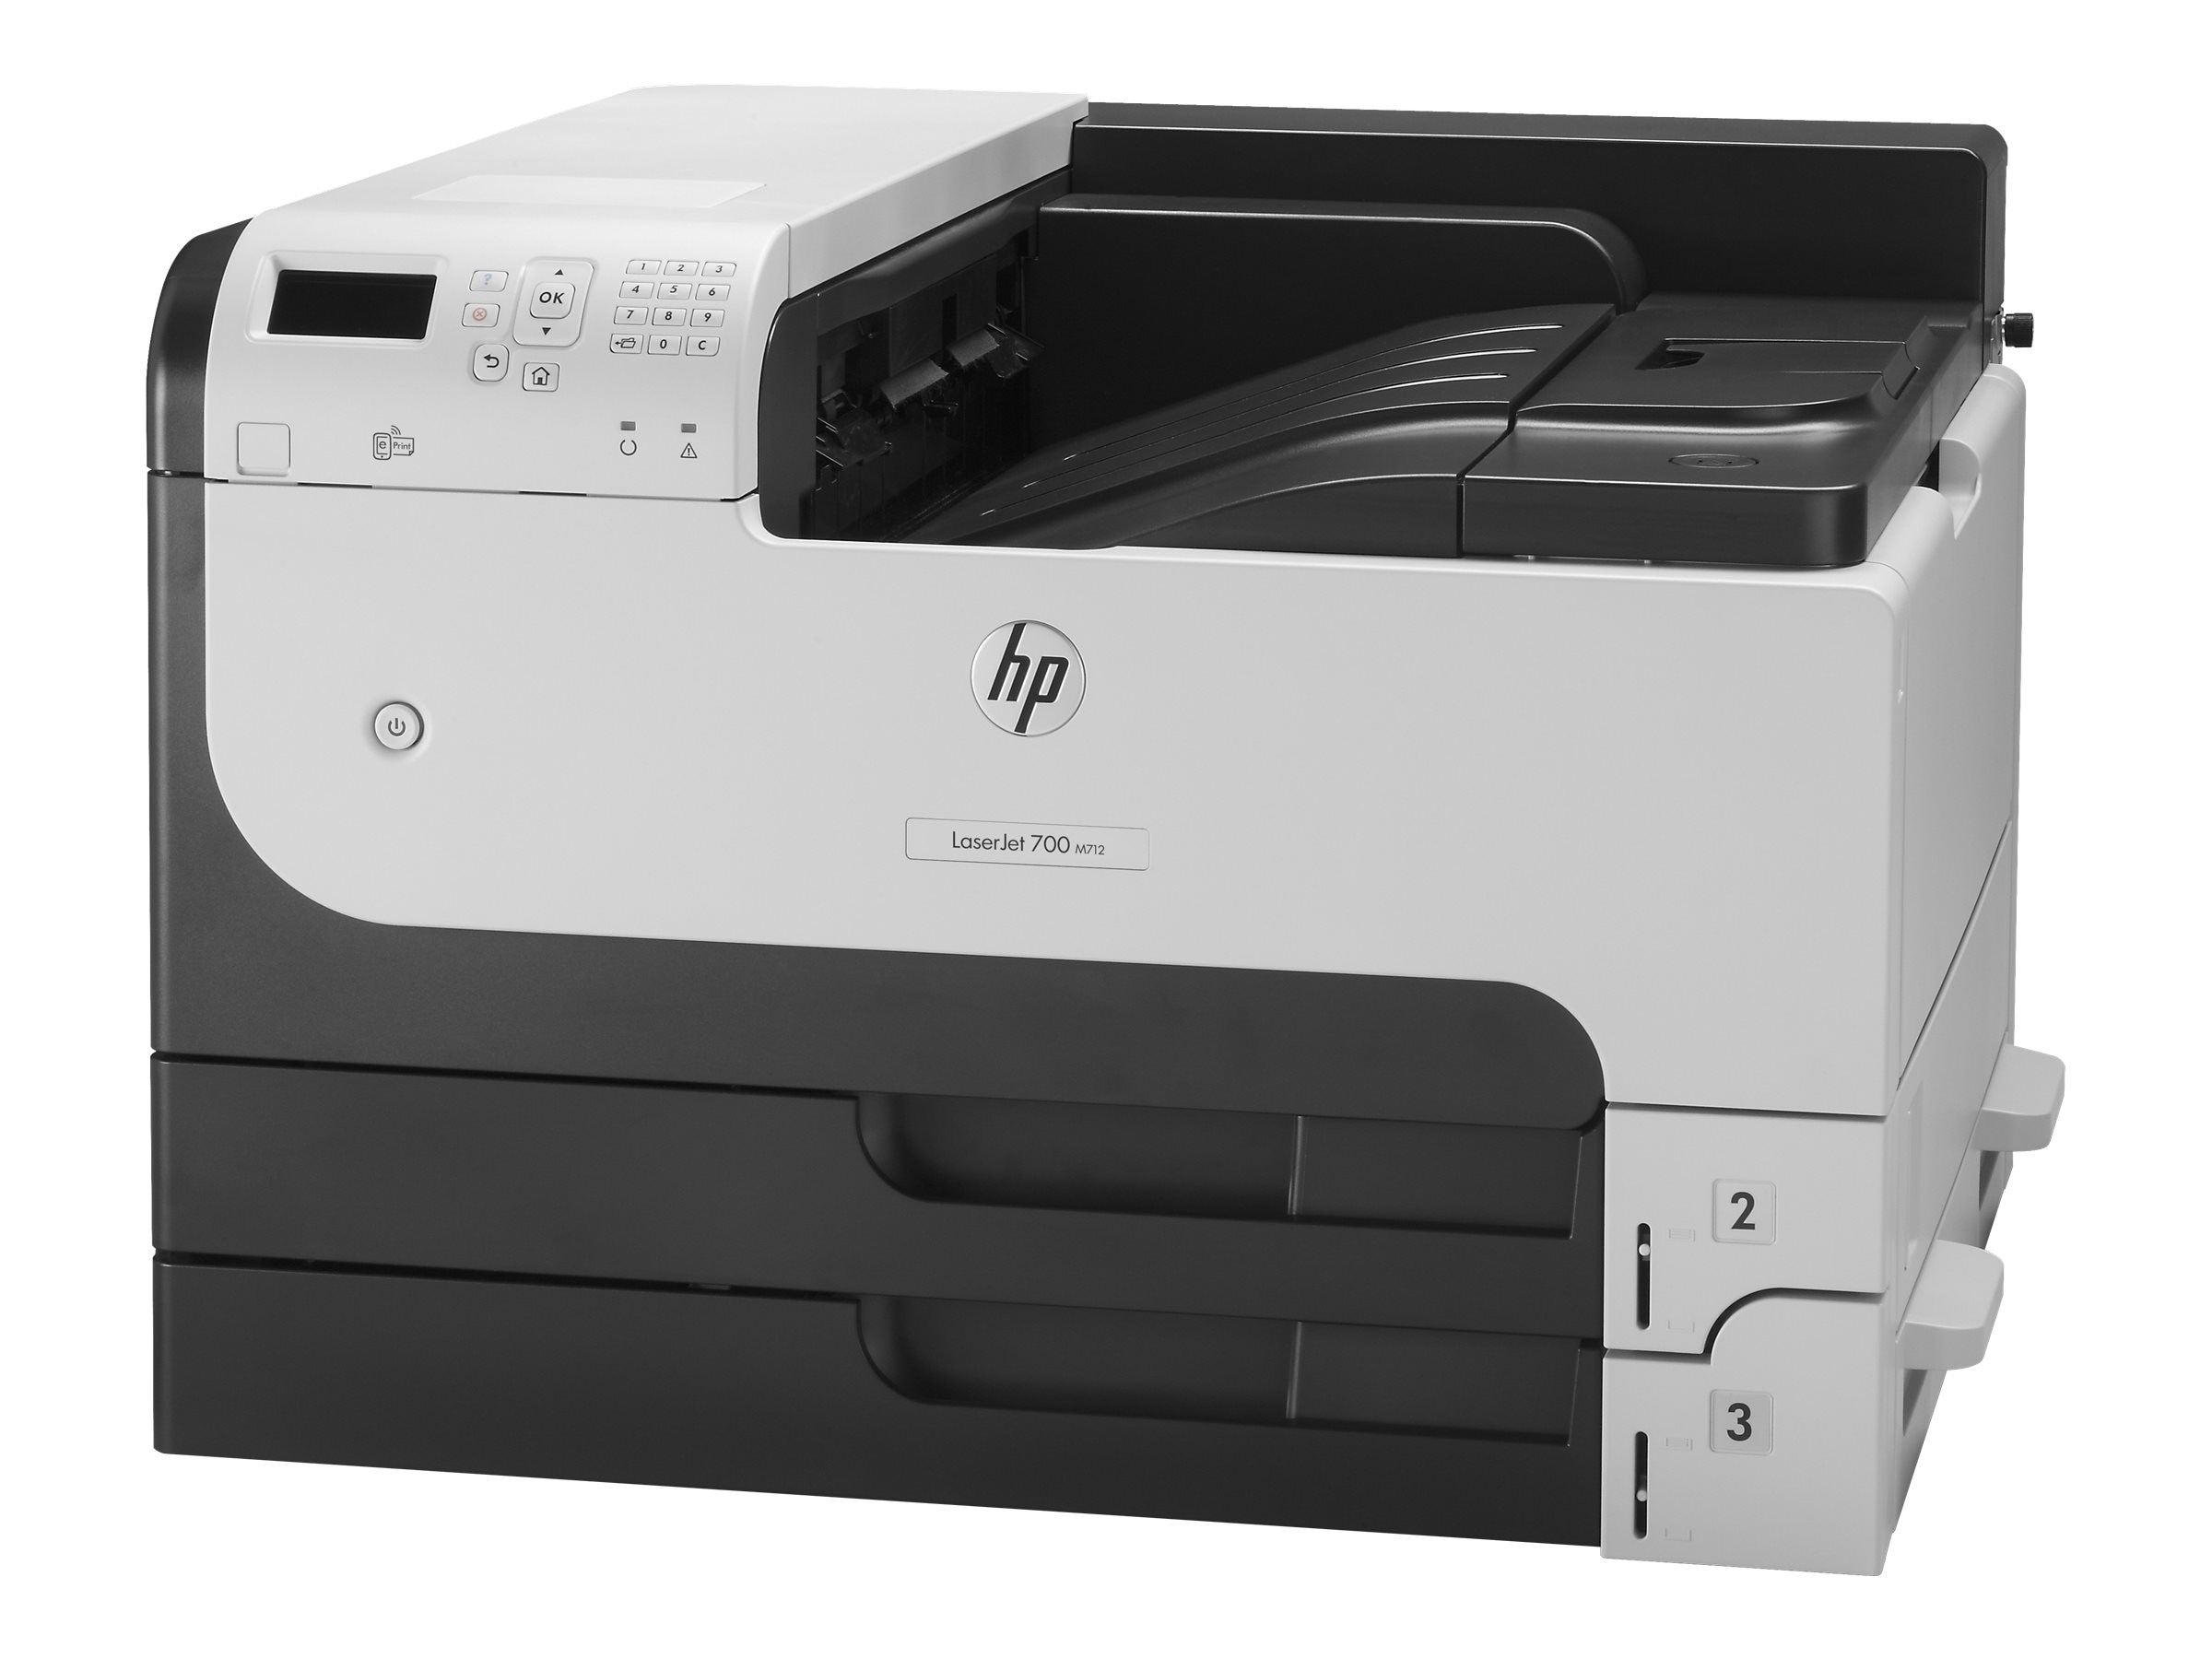 HP LaserJet Enterprise 700 M712dn Printer (replaces q7545a -laserjet 5200tn)